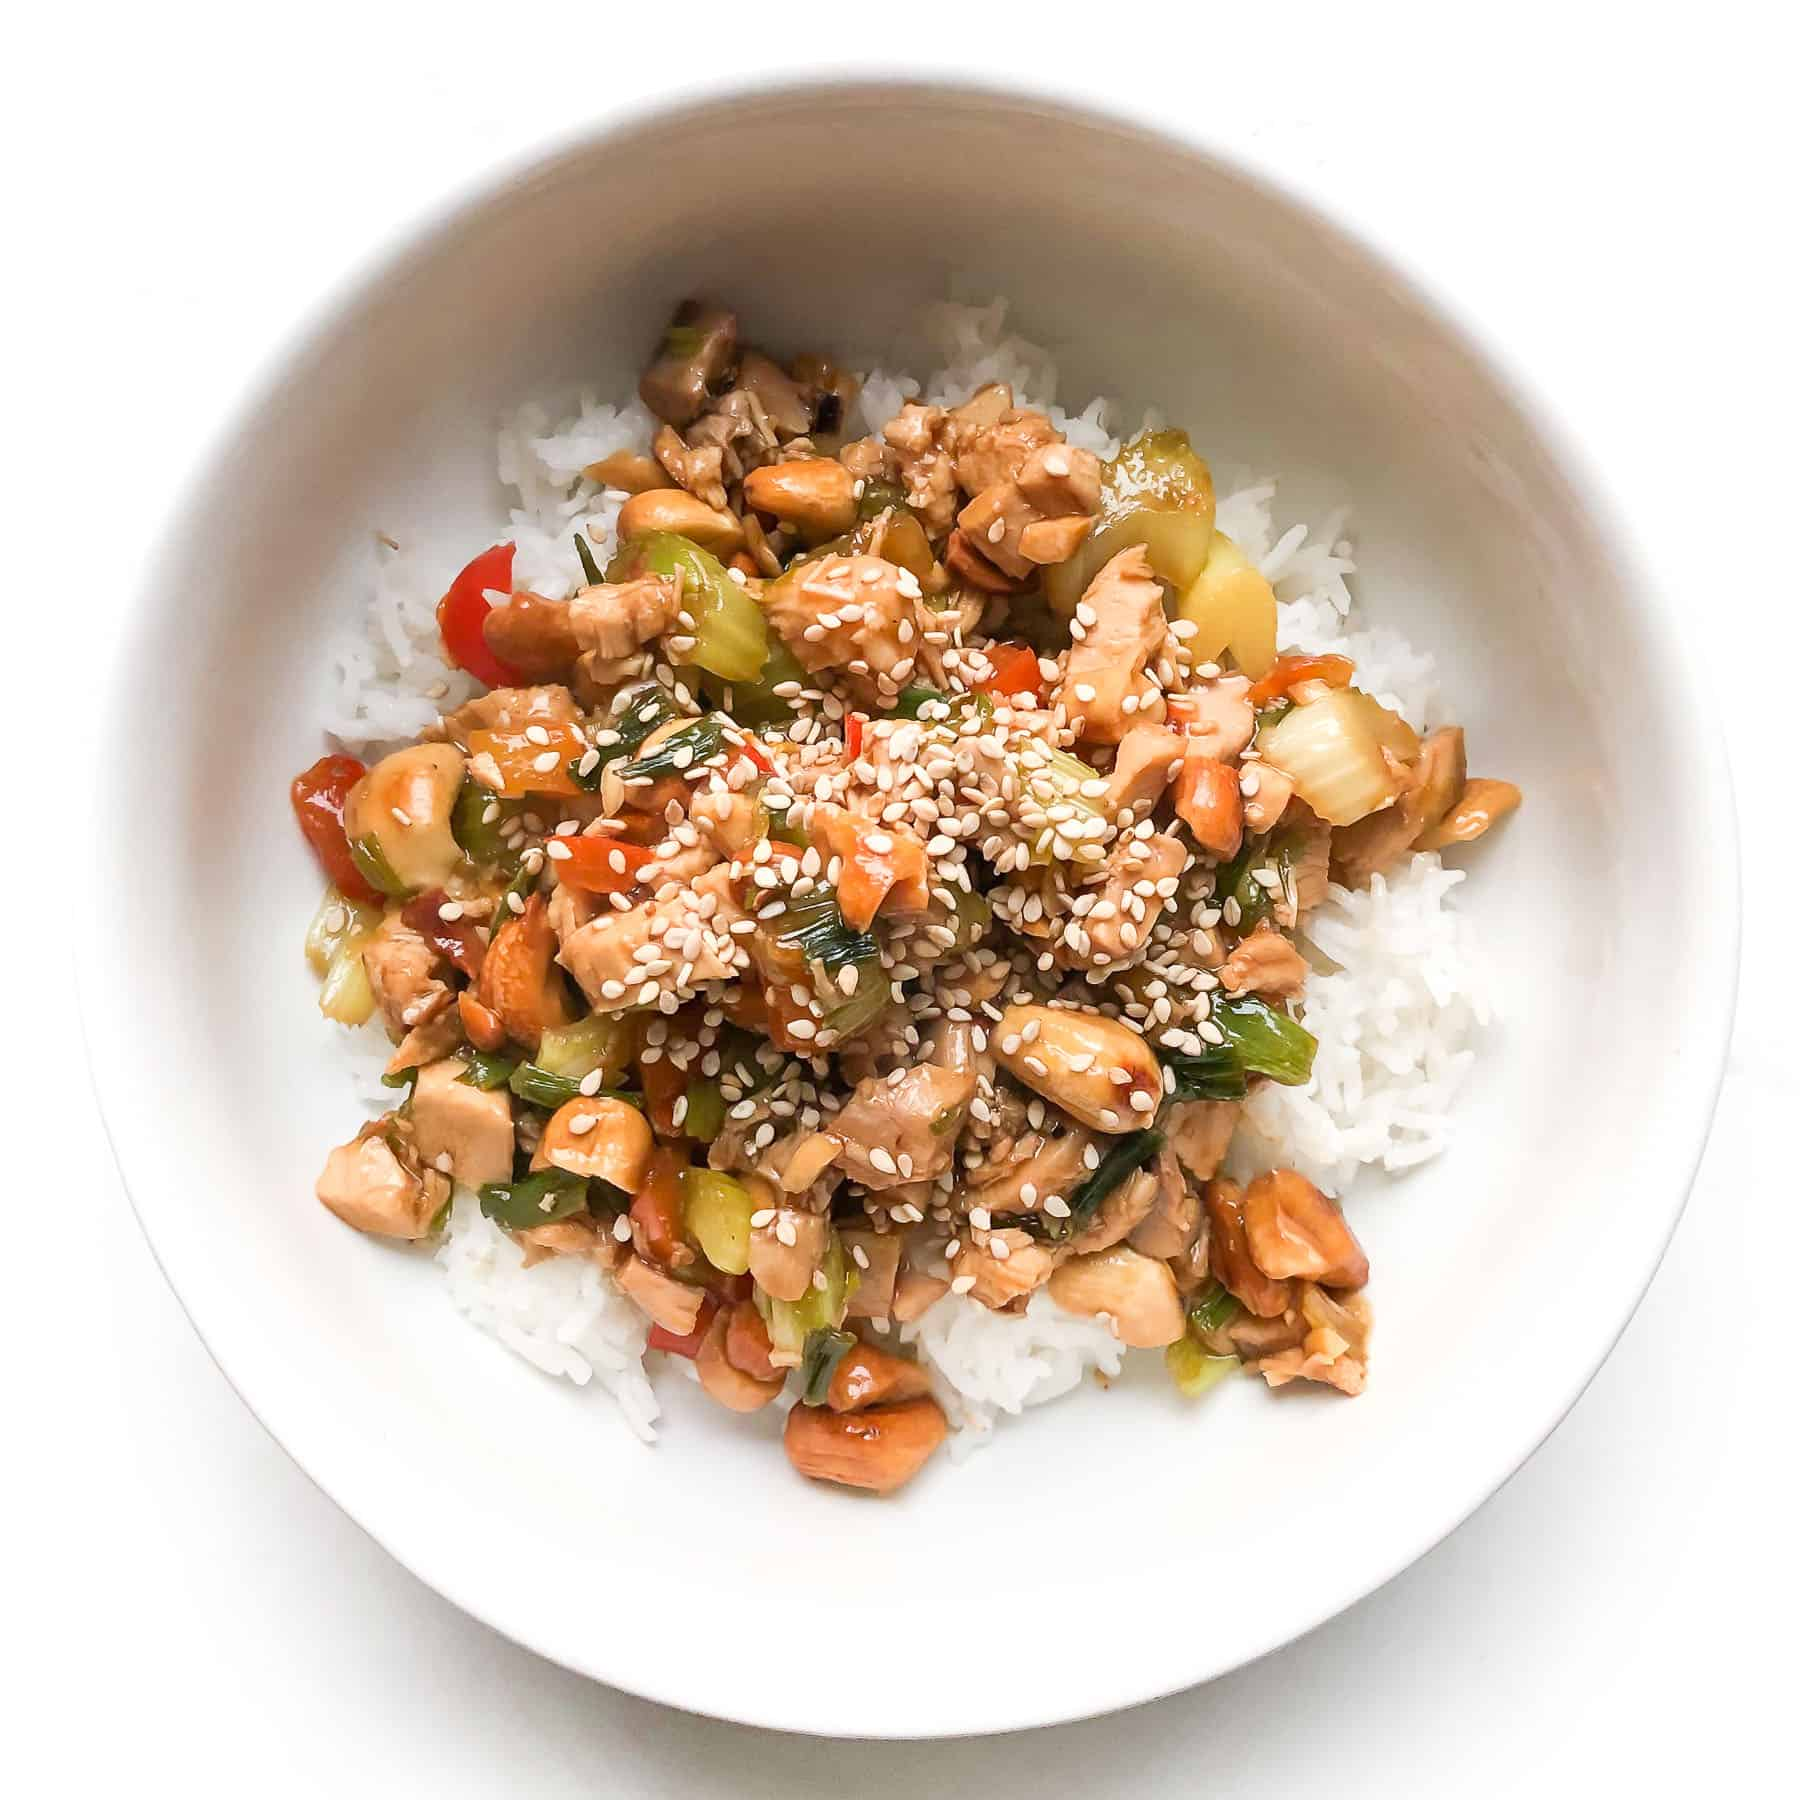 CHICKEN AND CELERY STIR FRY IN A WHITE BOWL TOPPED WITH SESAME SEEDS OVER CAULIFLOWER RICE IN A WHITE BOWL AND BACKGROUND